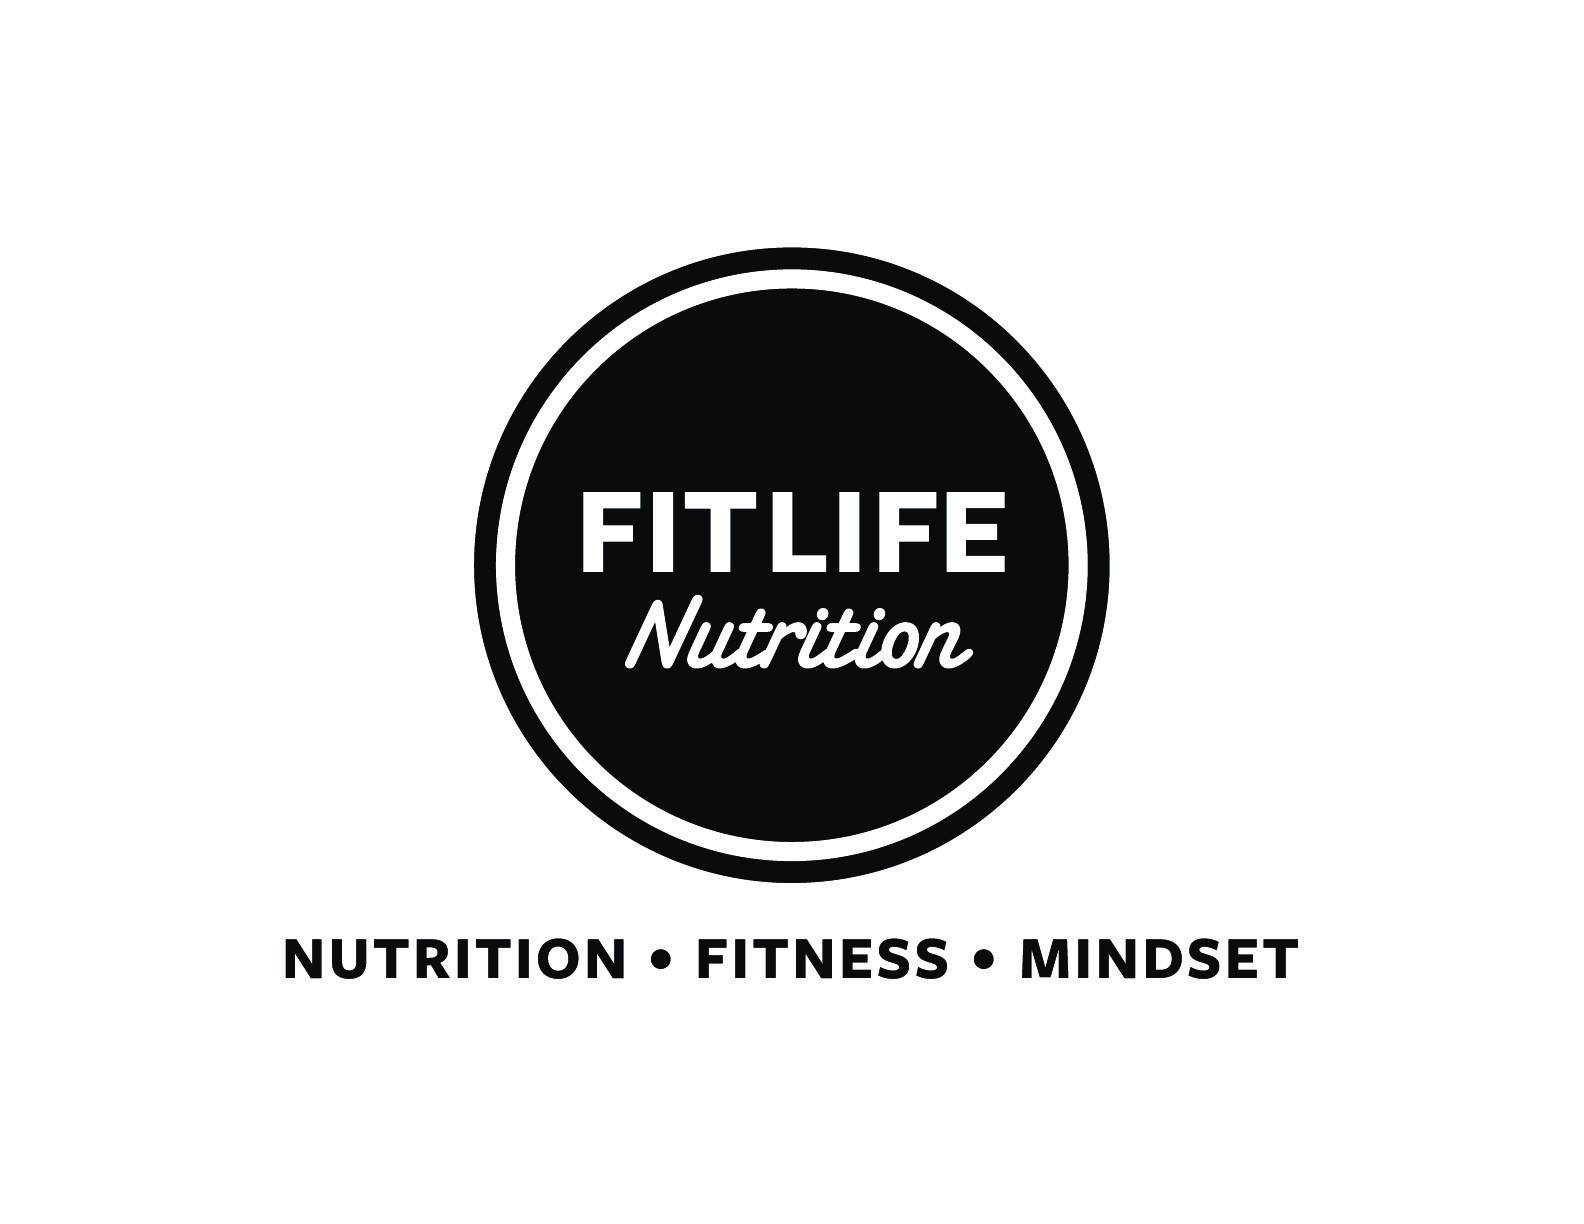 fitlife-nutrition-white.jpeg